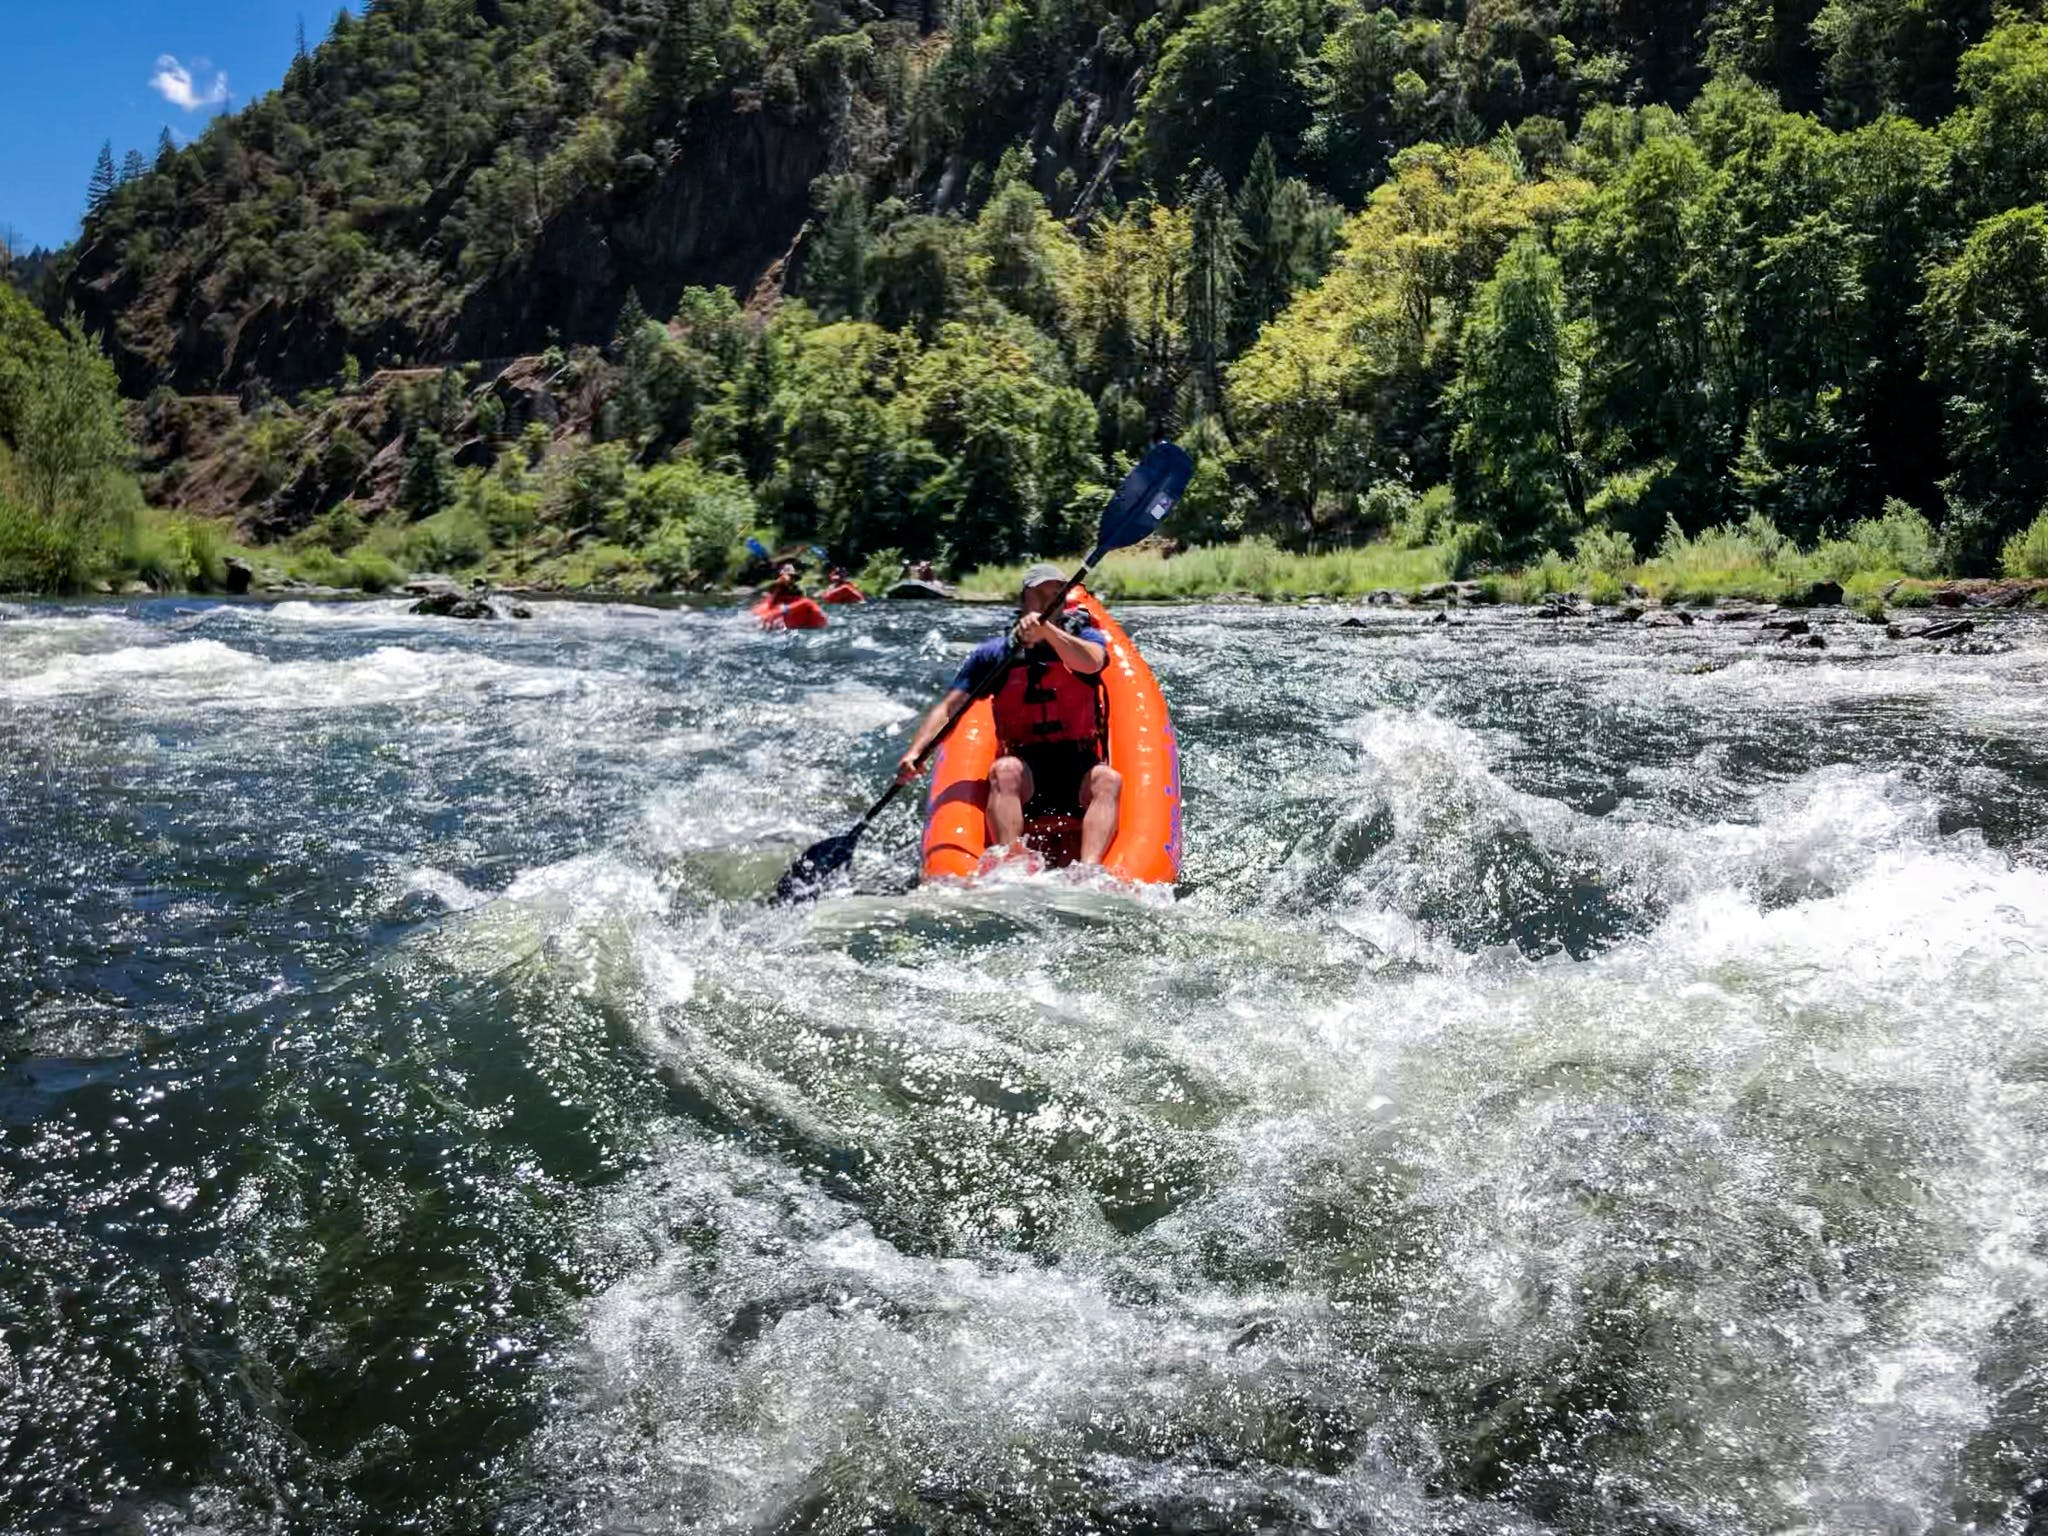 Kayaker in the rapids on the Rogue River in Southern Oregon